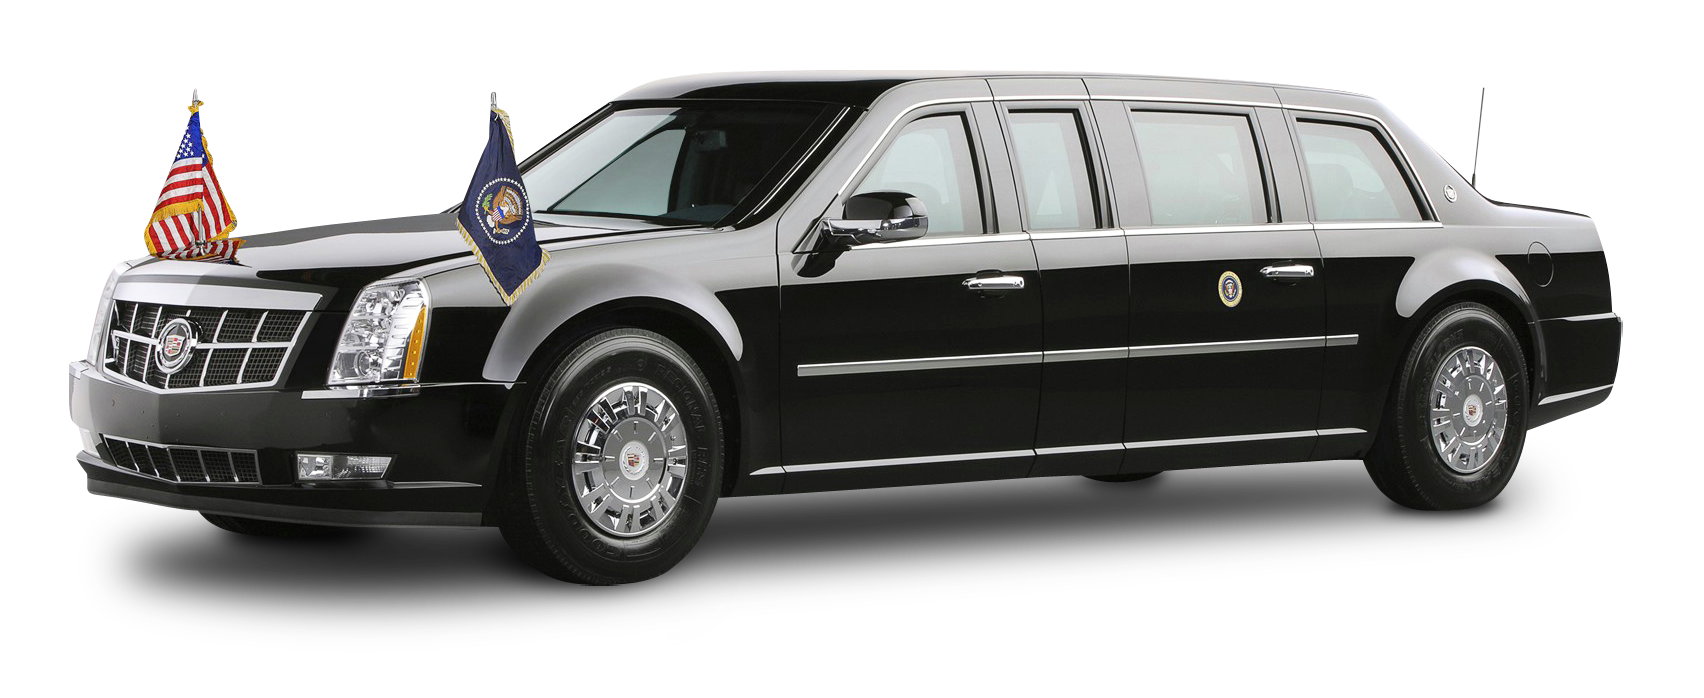 Cadillac Presidential Limousine Car PNG Image - PurePNG | Free ...